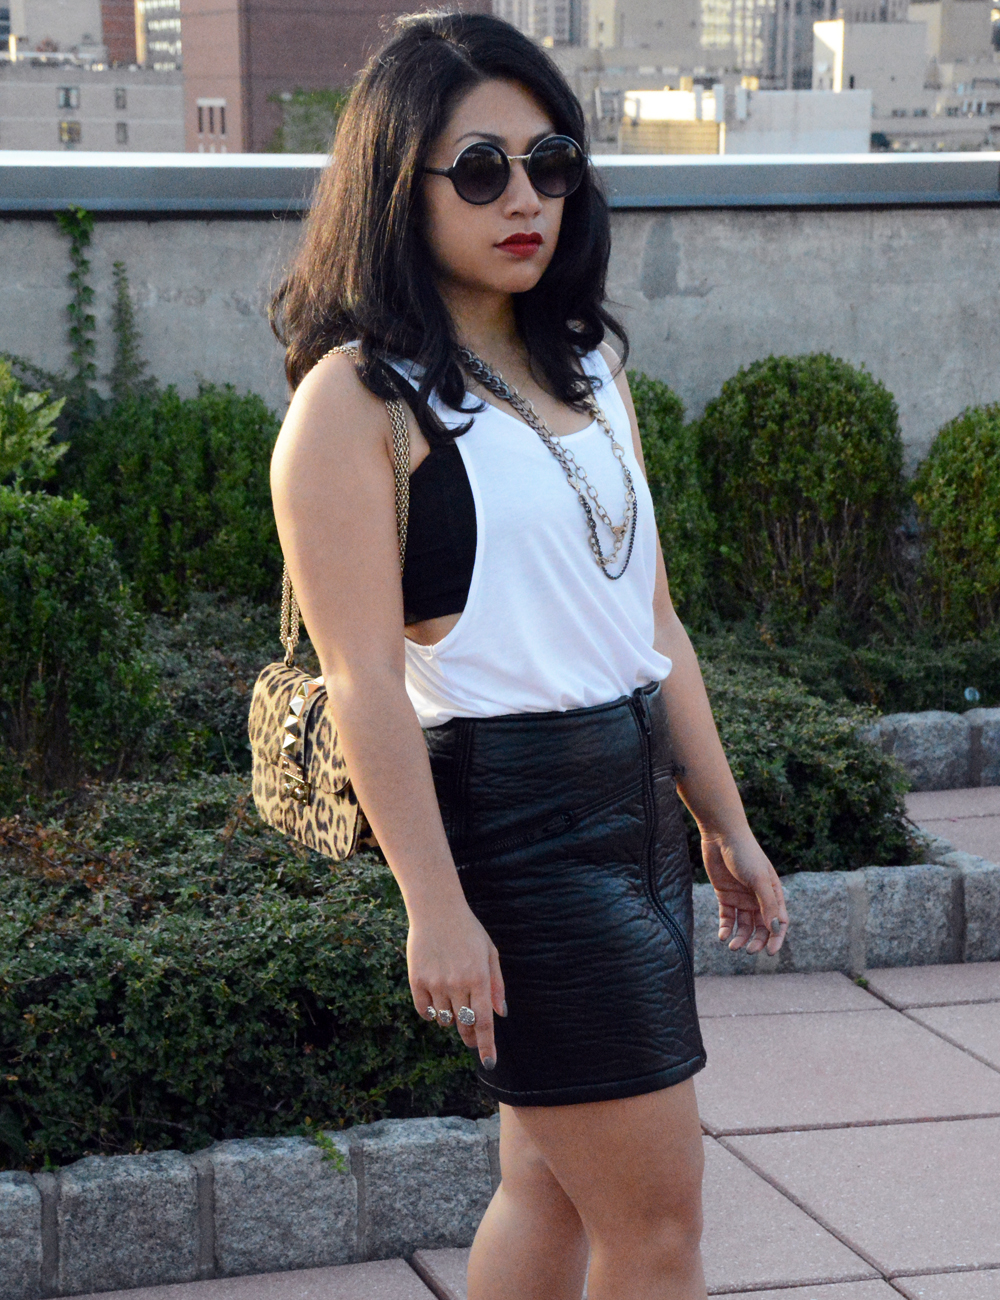 H&M imitation leather skirt and sleeveless top